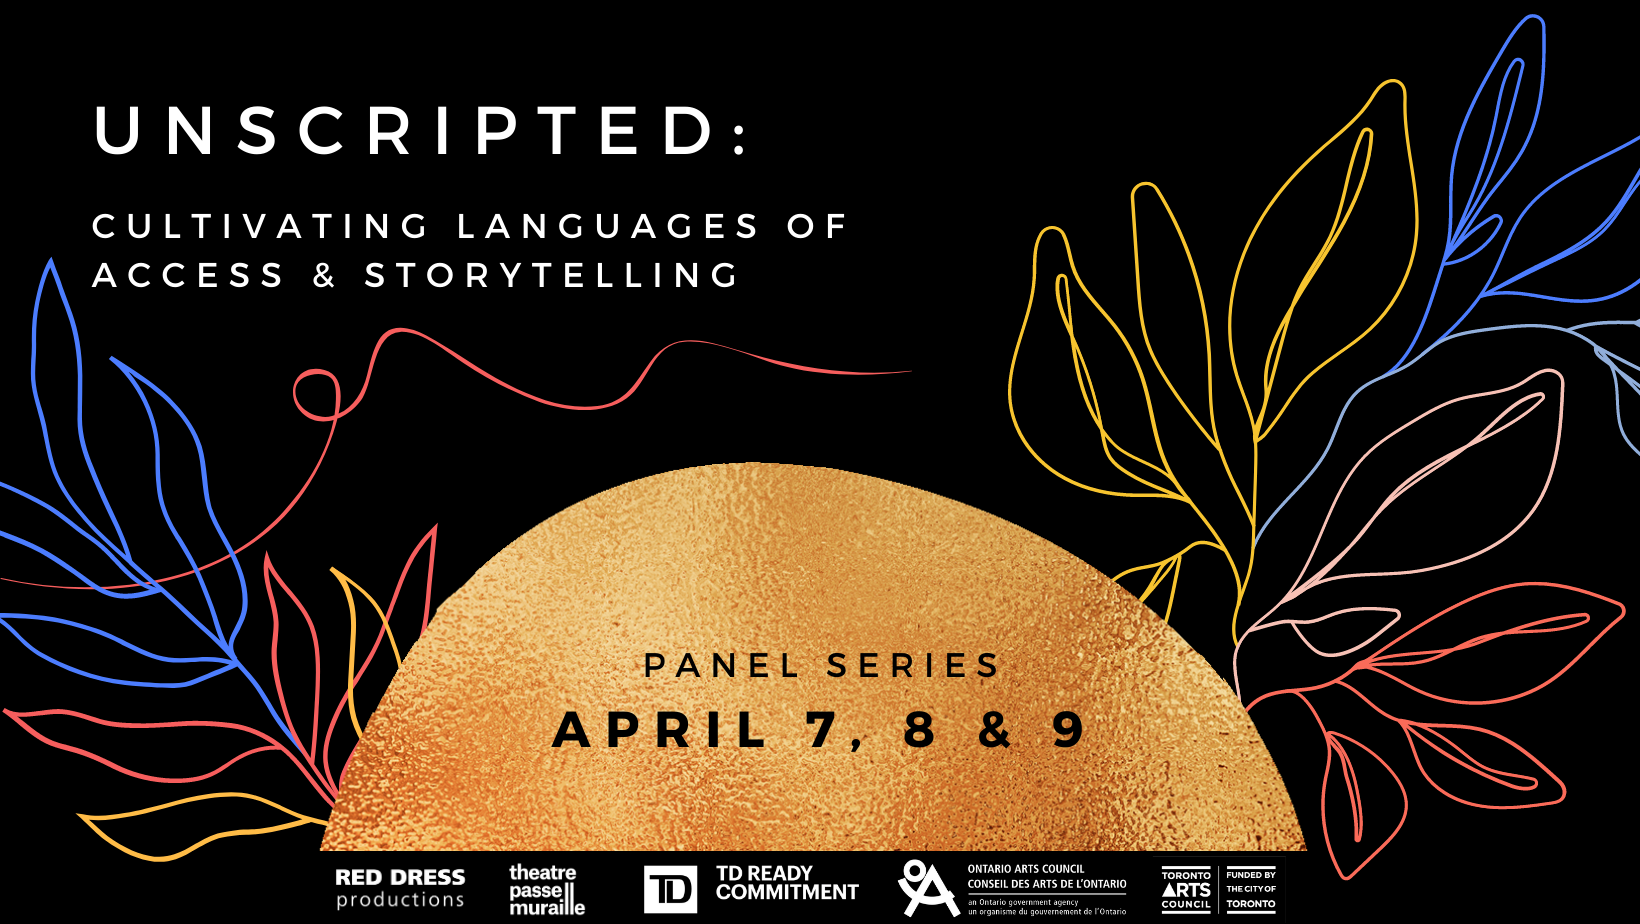 White text on a black background with colourful outlines of leaves. The text reads Unscripted: Cultivating Languages of Access and Storytelling. At the bottom of the image is a golden orange half circle. Inside the half circle, in black lettering it reads Panel Series April 7, 8 and 9. Beneath the half circle is a thin black strip with Red Dress Productions, Theatre Passe Muraille, TD Bank Group, Ontario Arts Council, & Toronto Arts Council logos.